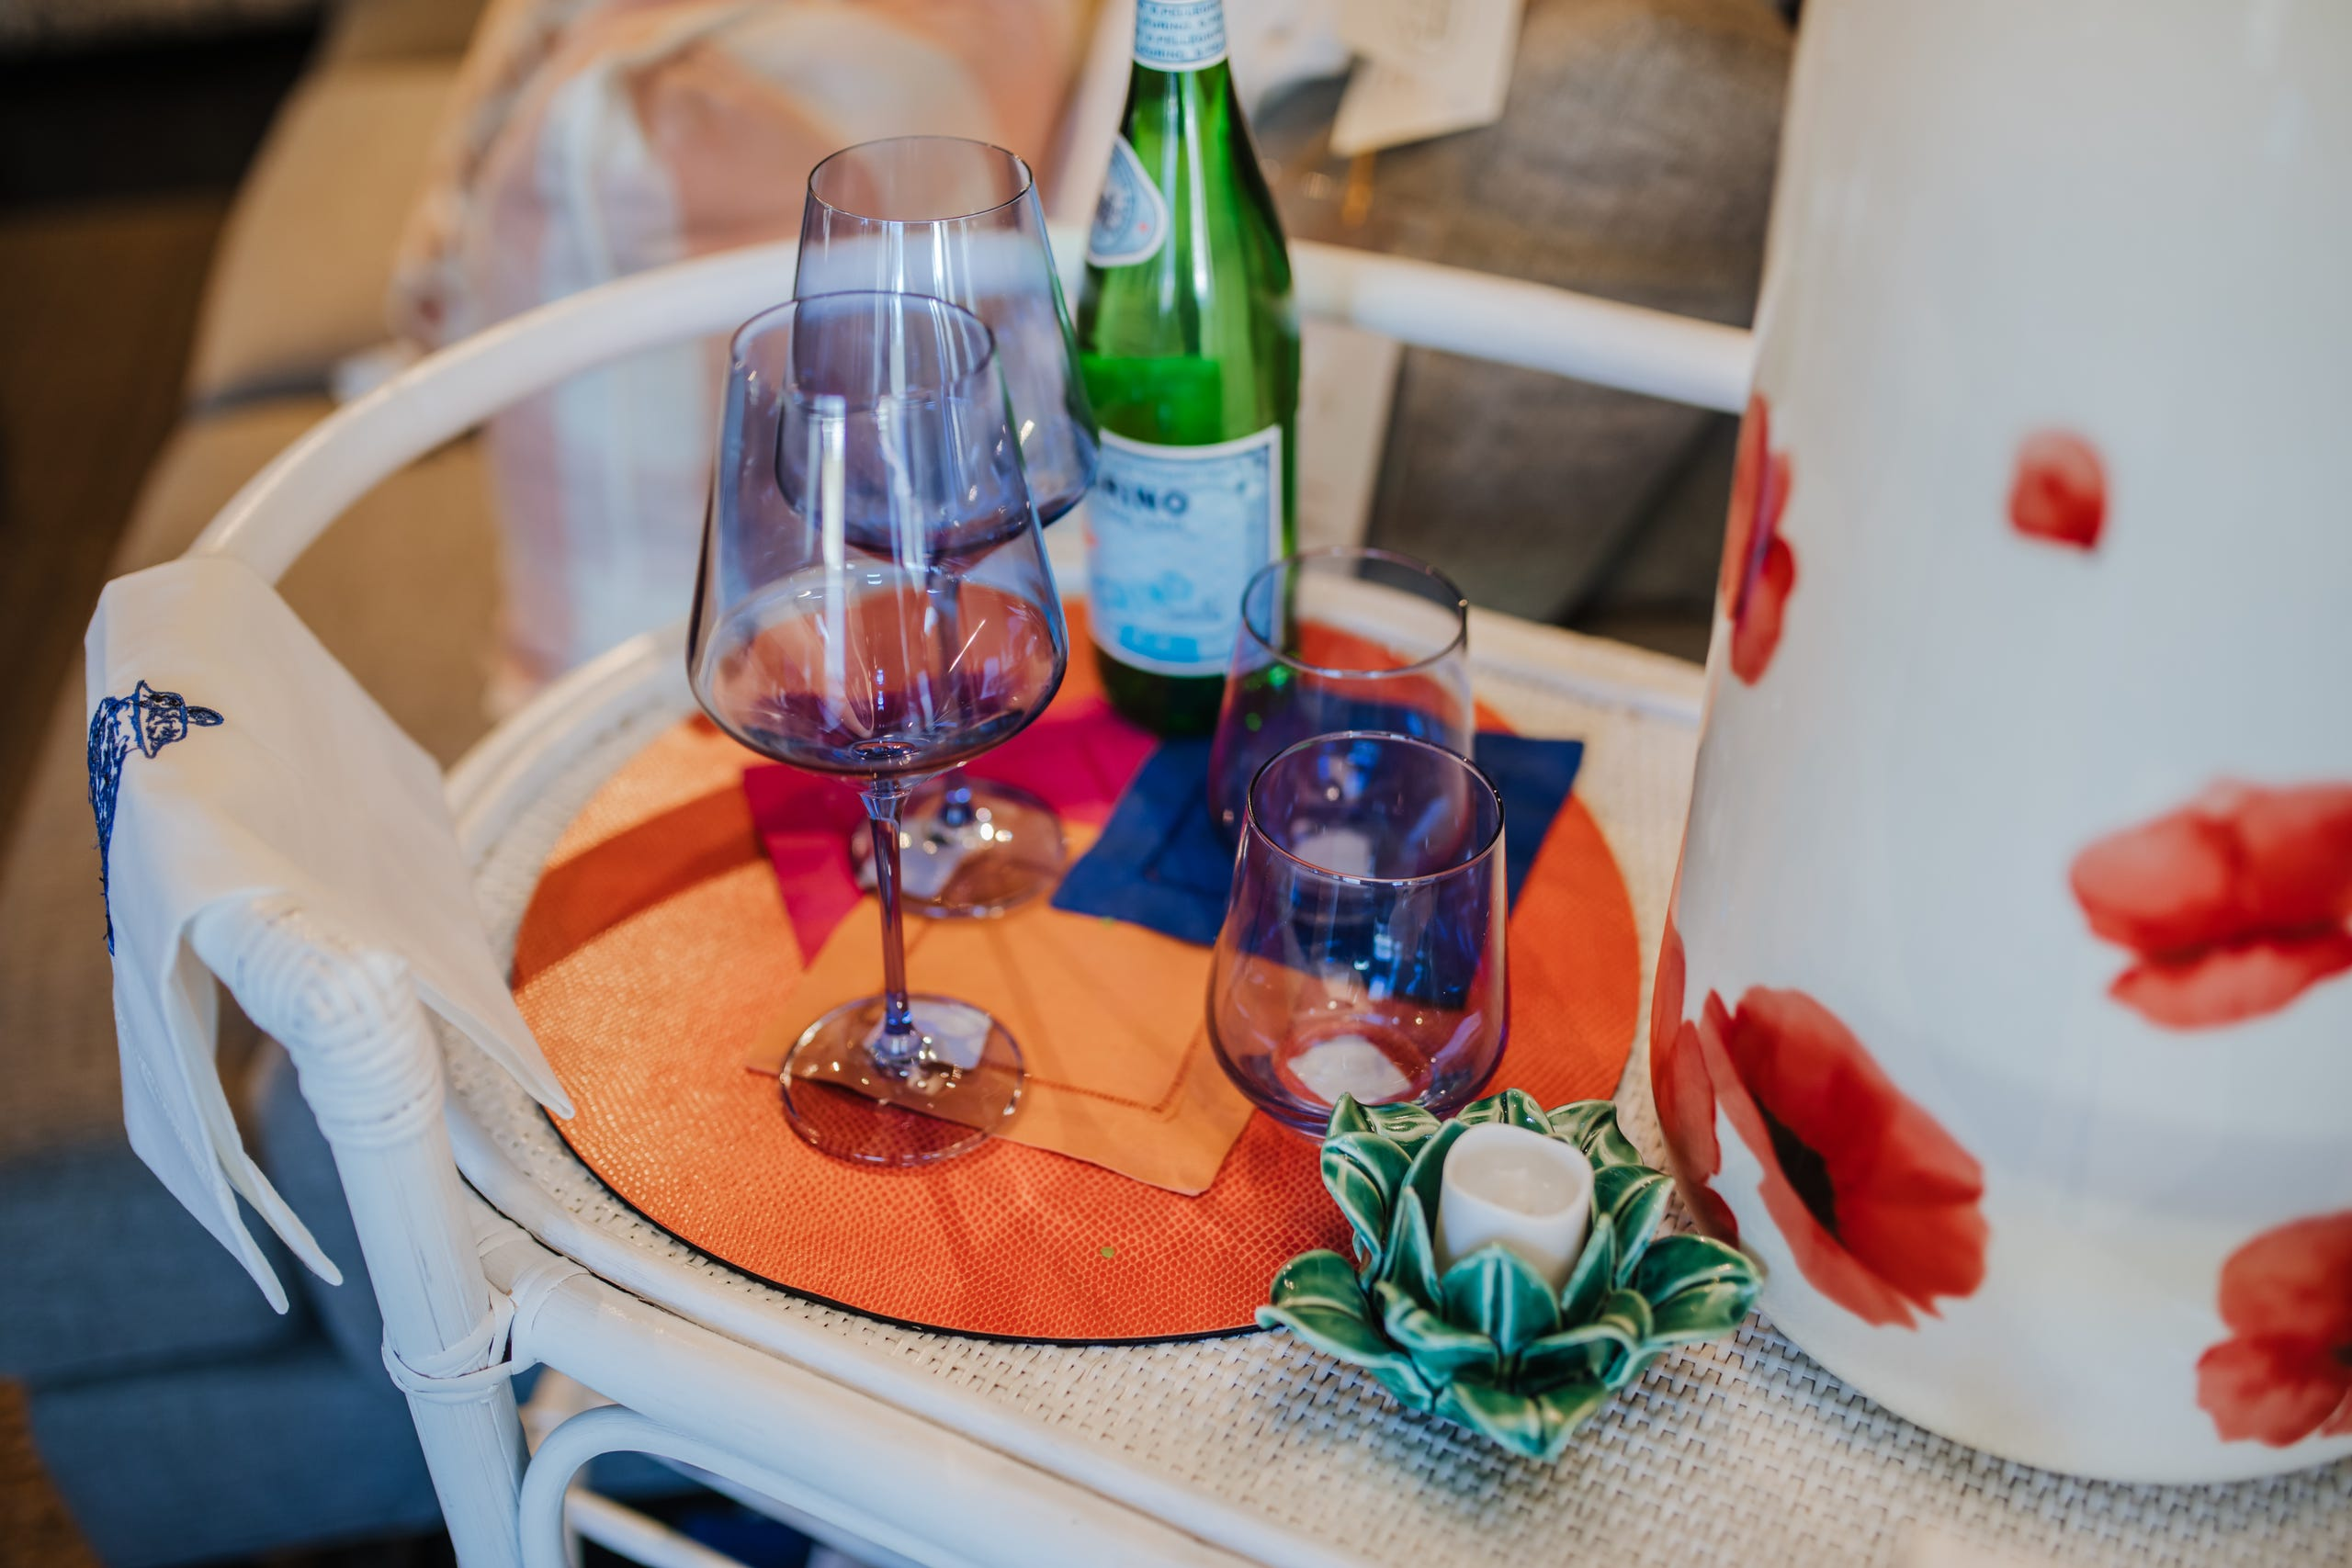 Brightly hued drinking glasses, bottles, decanters and cake stands of today are elegant, delicate and fun.